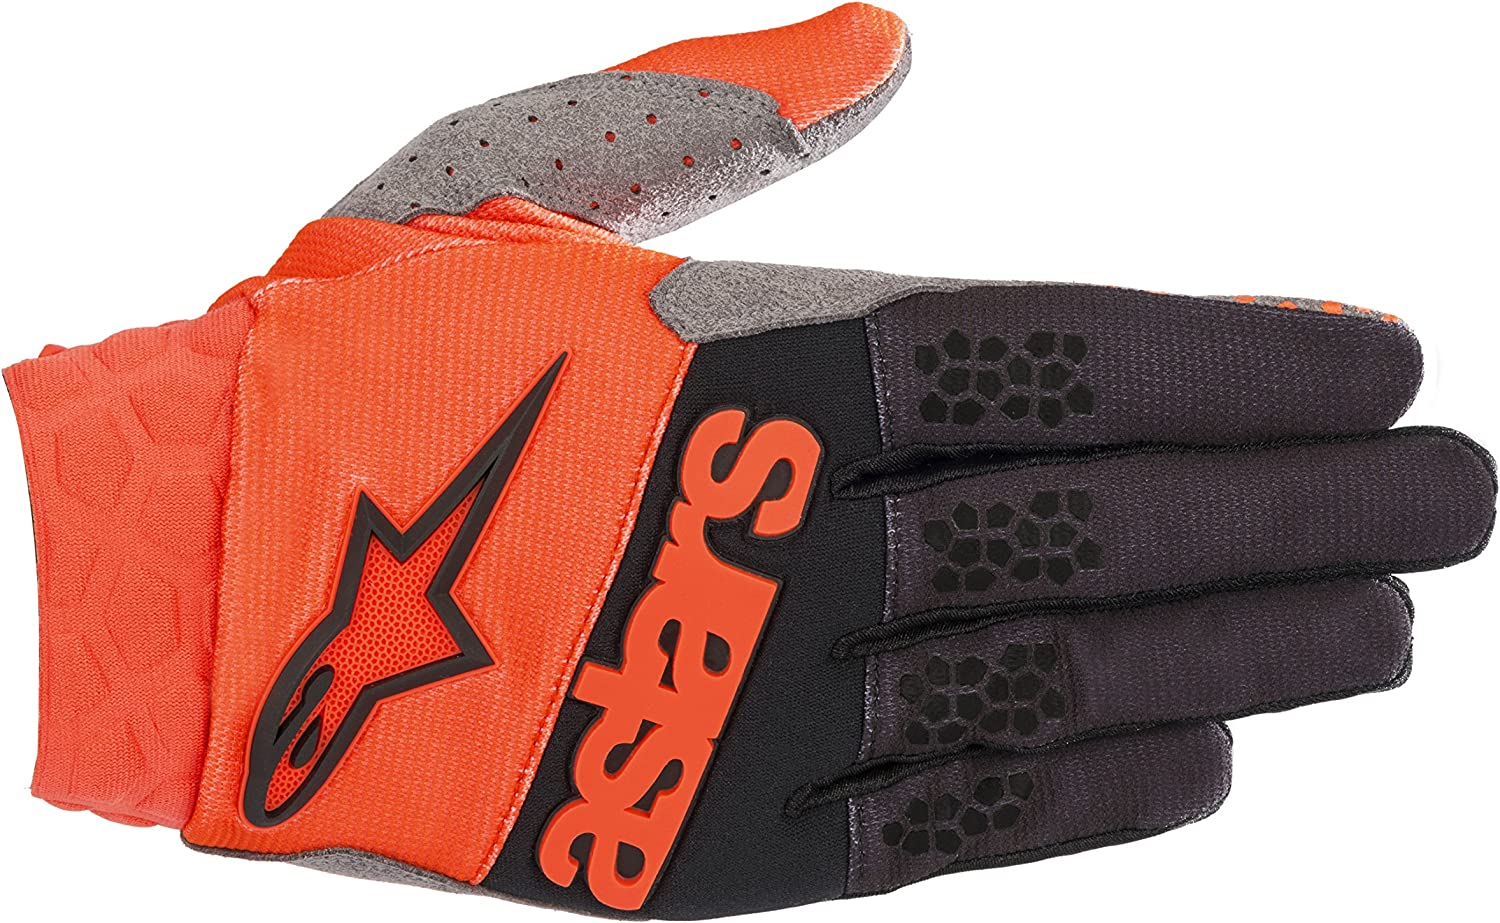 Alpinestars Radar MX Glove Small Orange Black